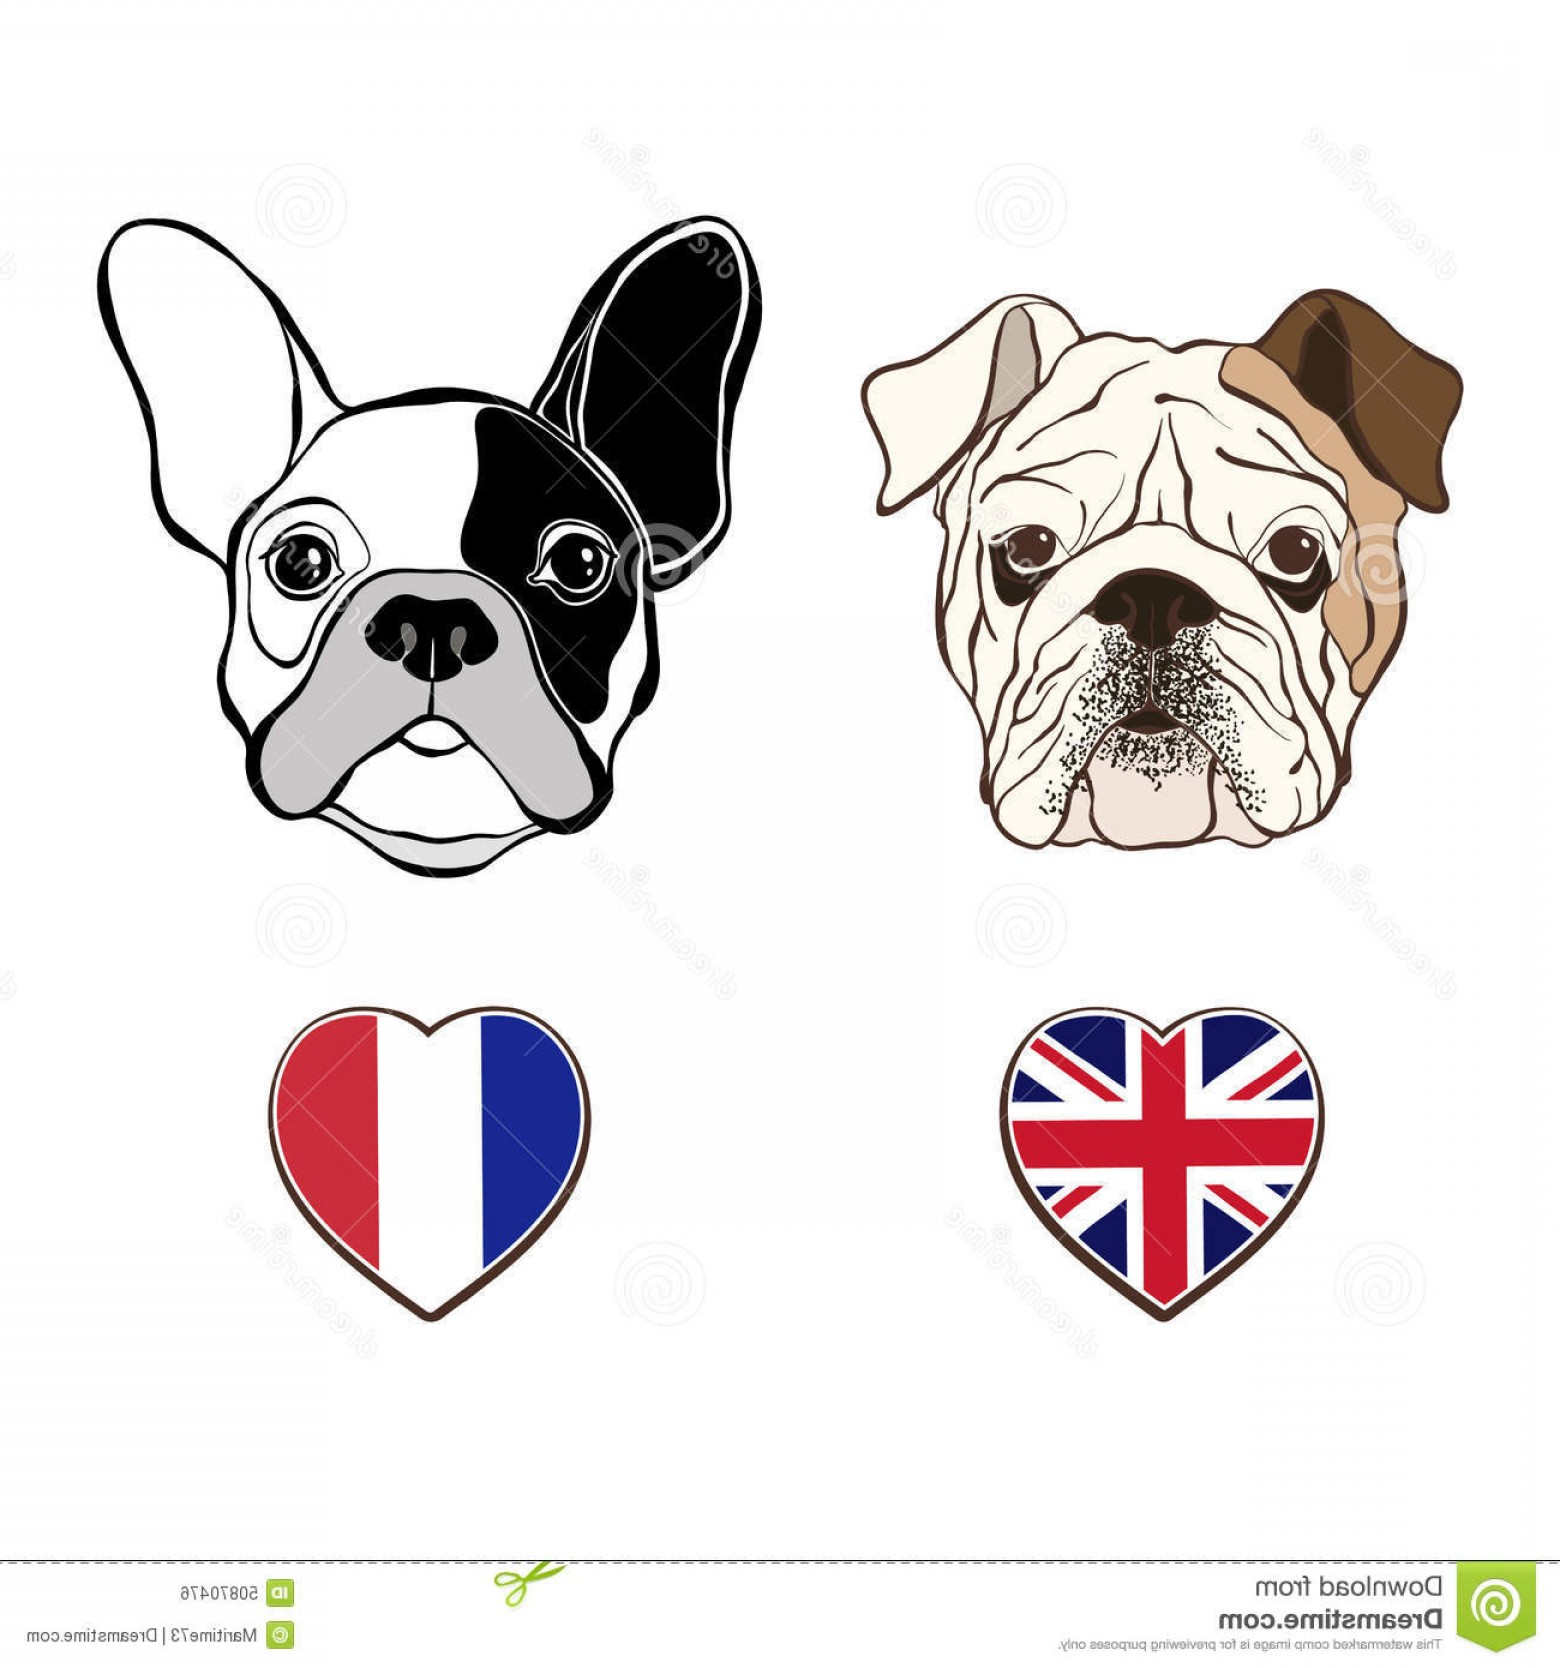 Marine Bulldog Logo In Vector: Stock Illustration English Bulldog Face French Bulldog Face Heart Flags Bulldogs Vector Illustration Elements Design Image